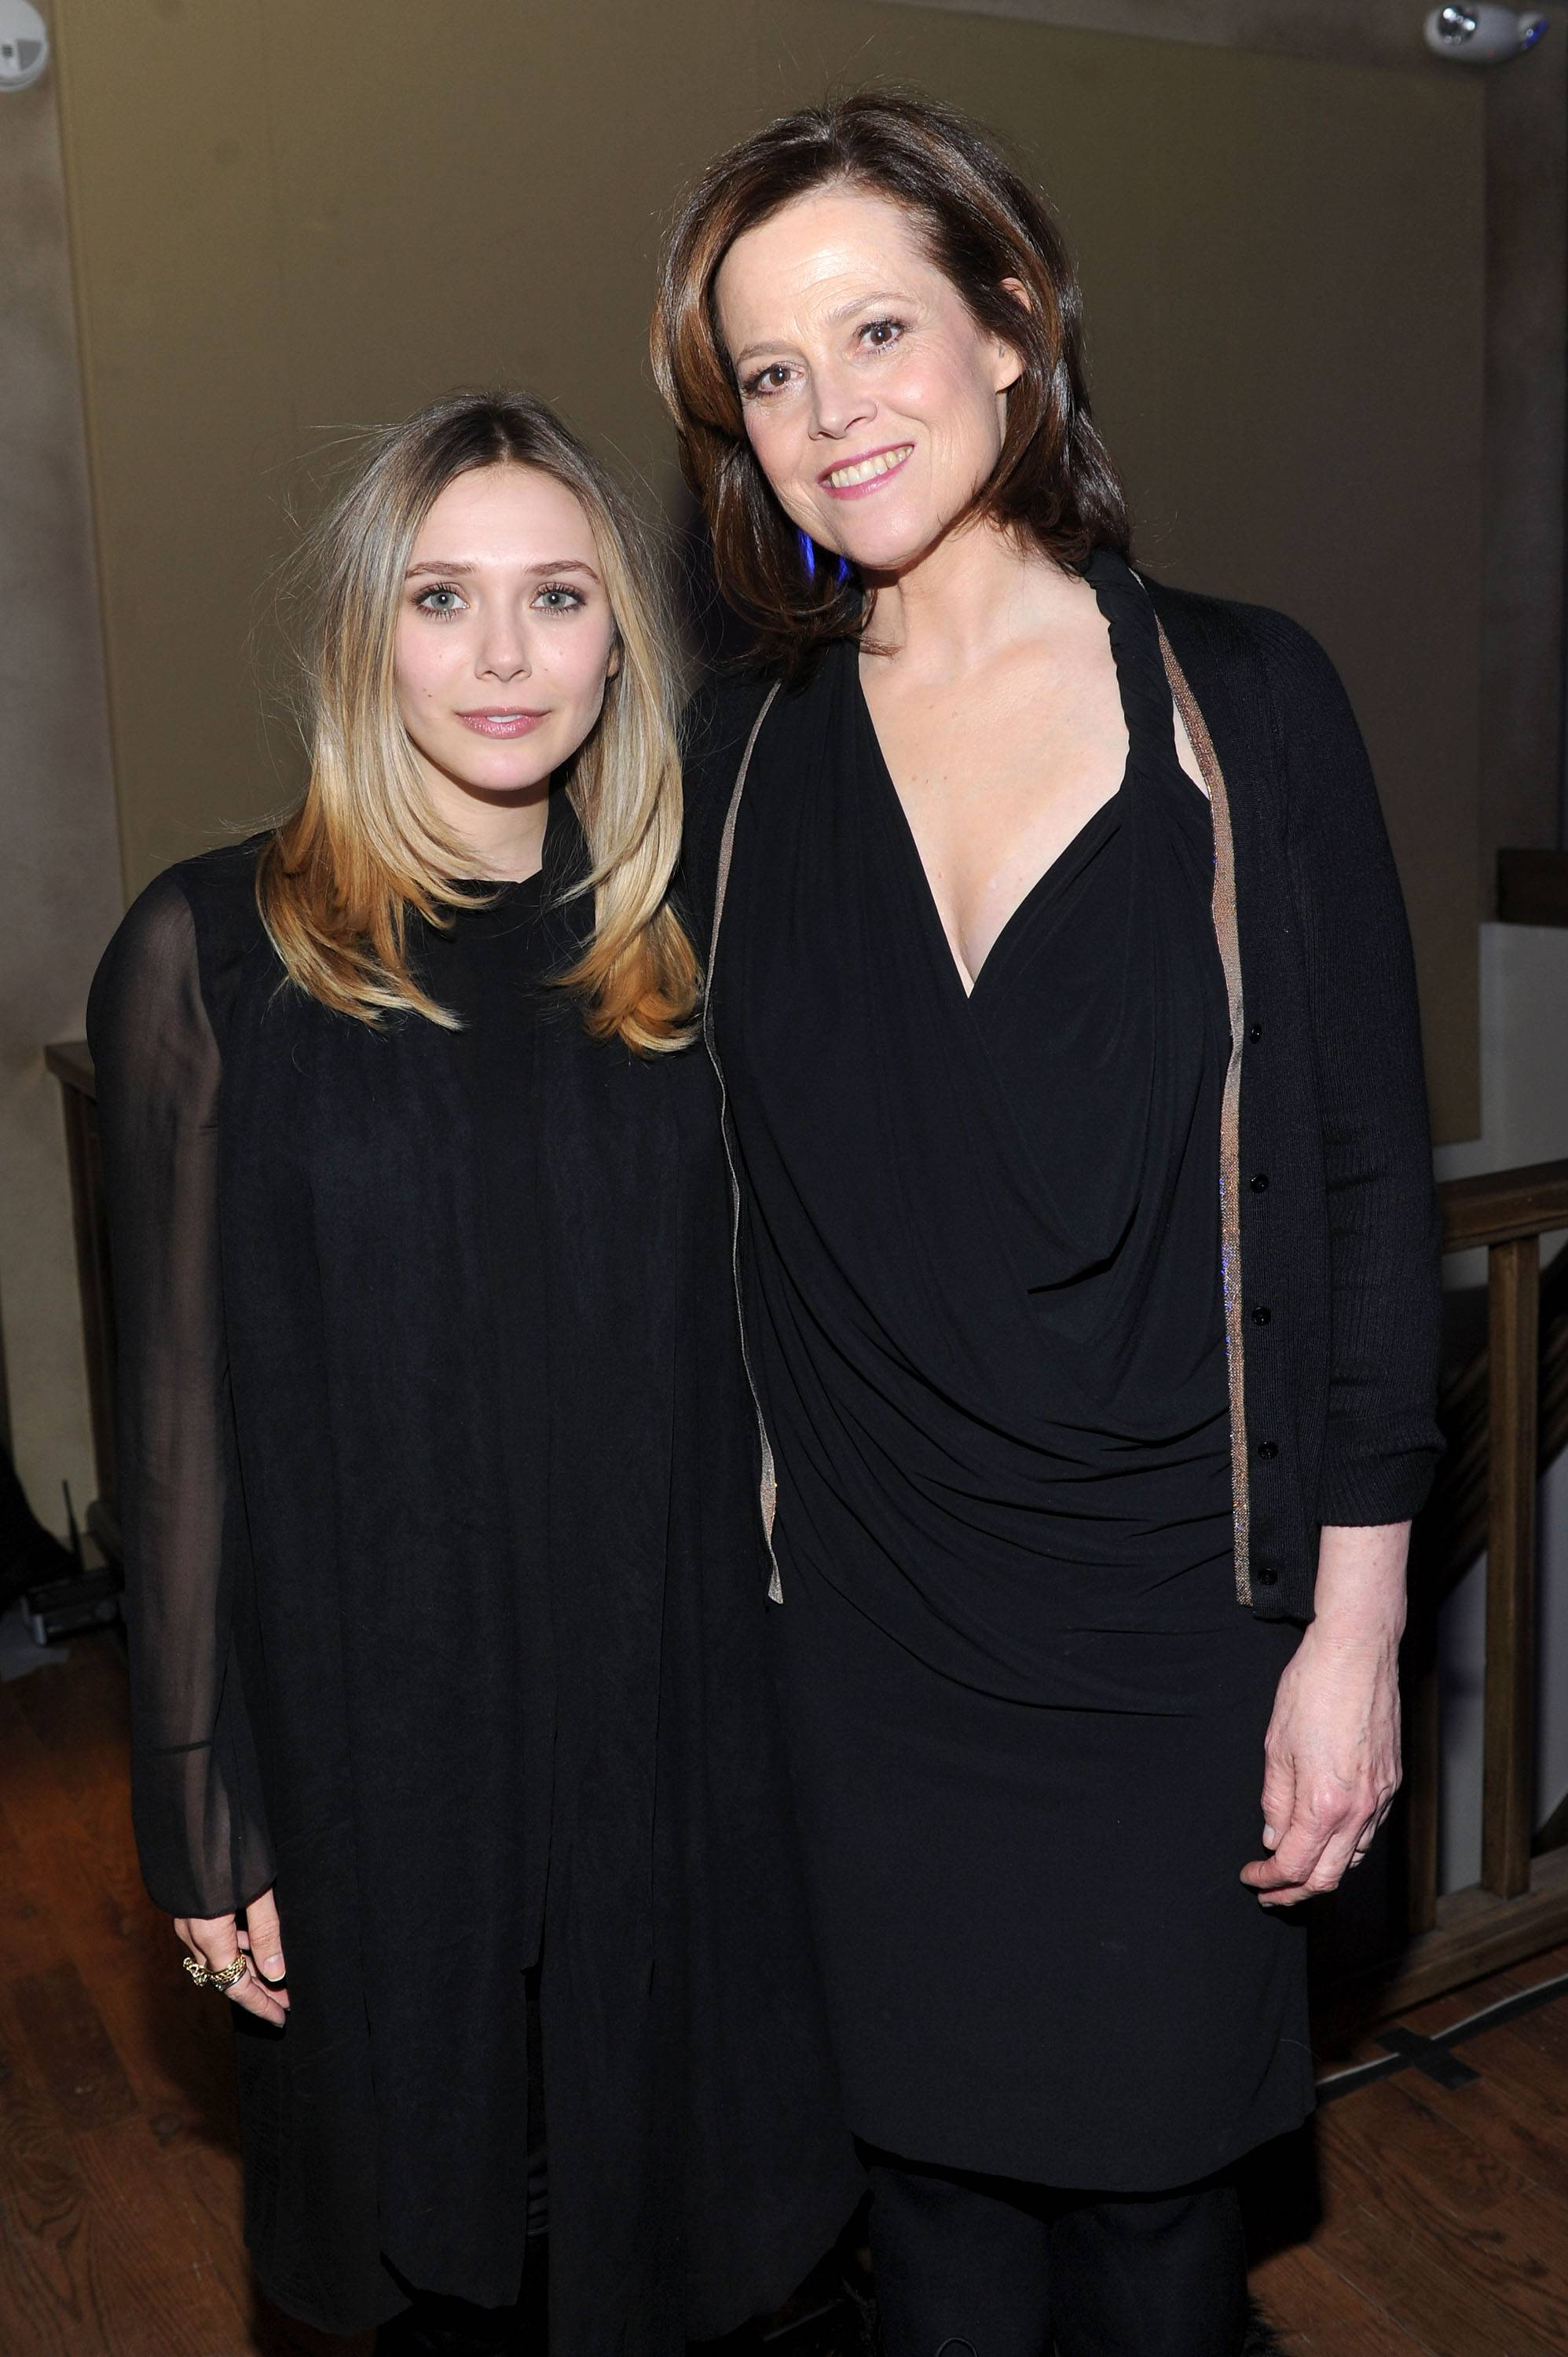 Elizabeth Olsen and Sigourney Weaver at